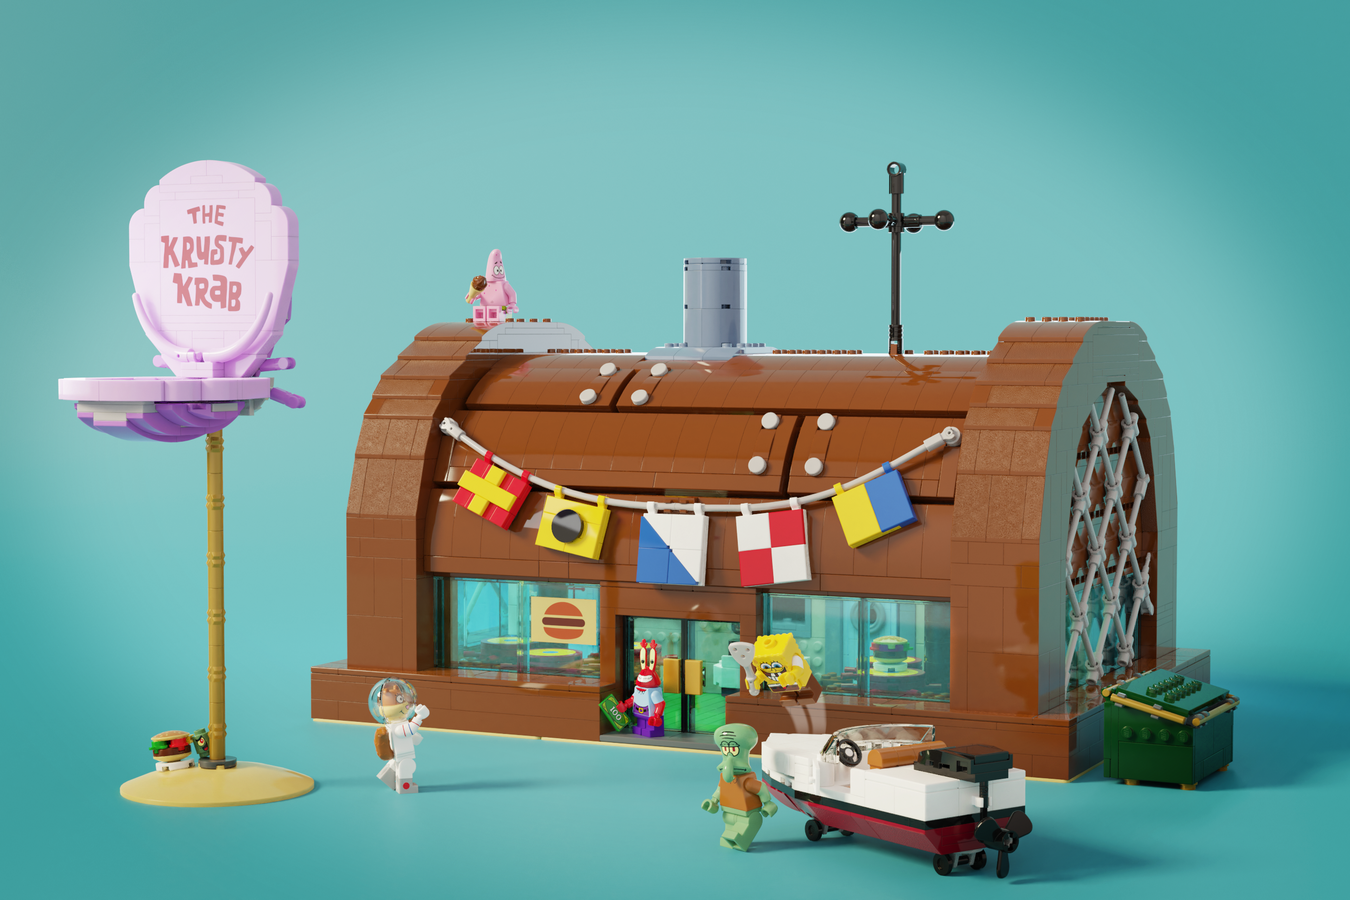 lego-ideas-spongebob-squarepants-the-krusty-krab-exe-sandbox zusammengebaut.com